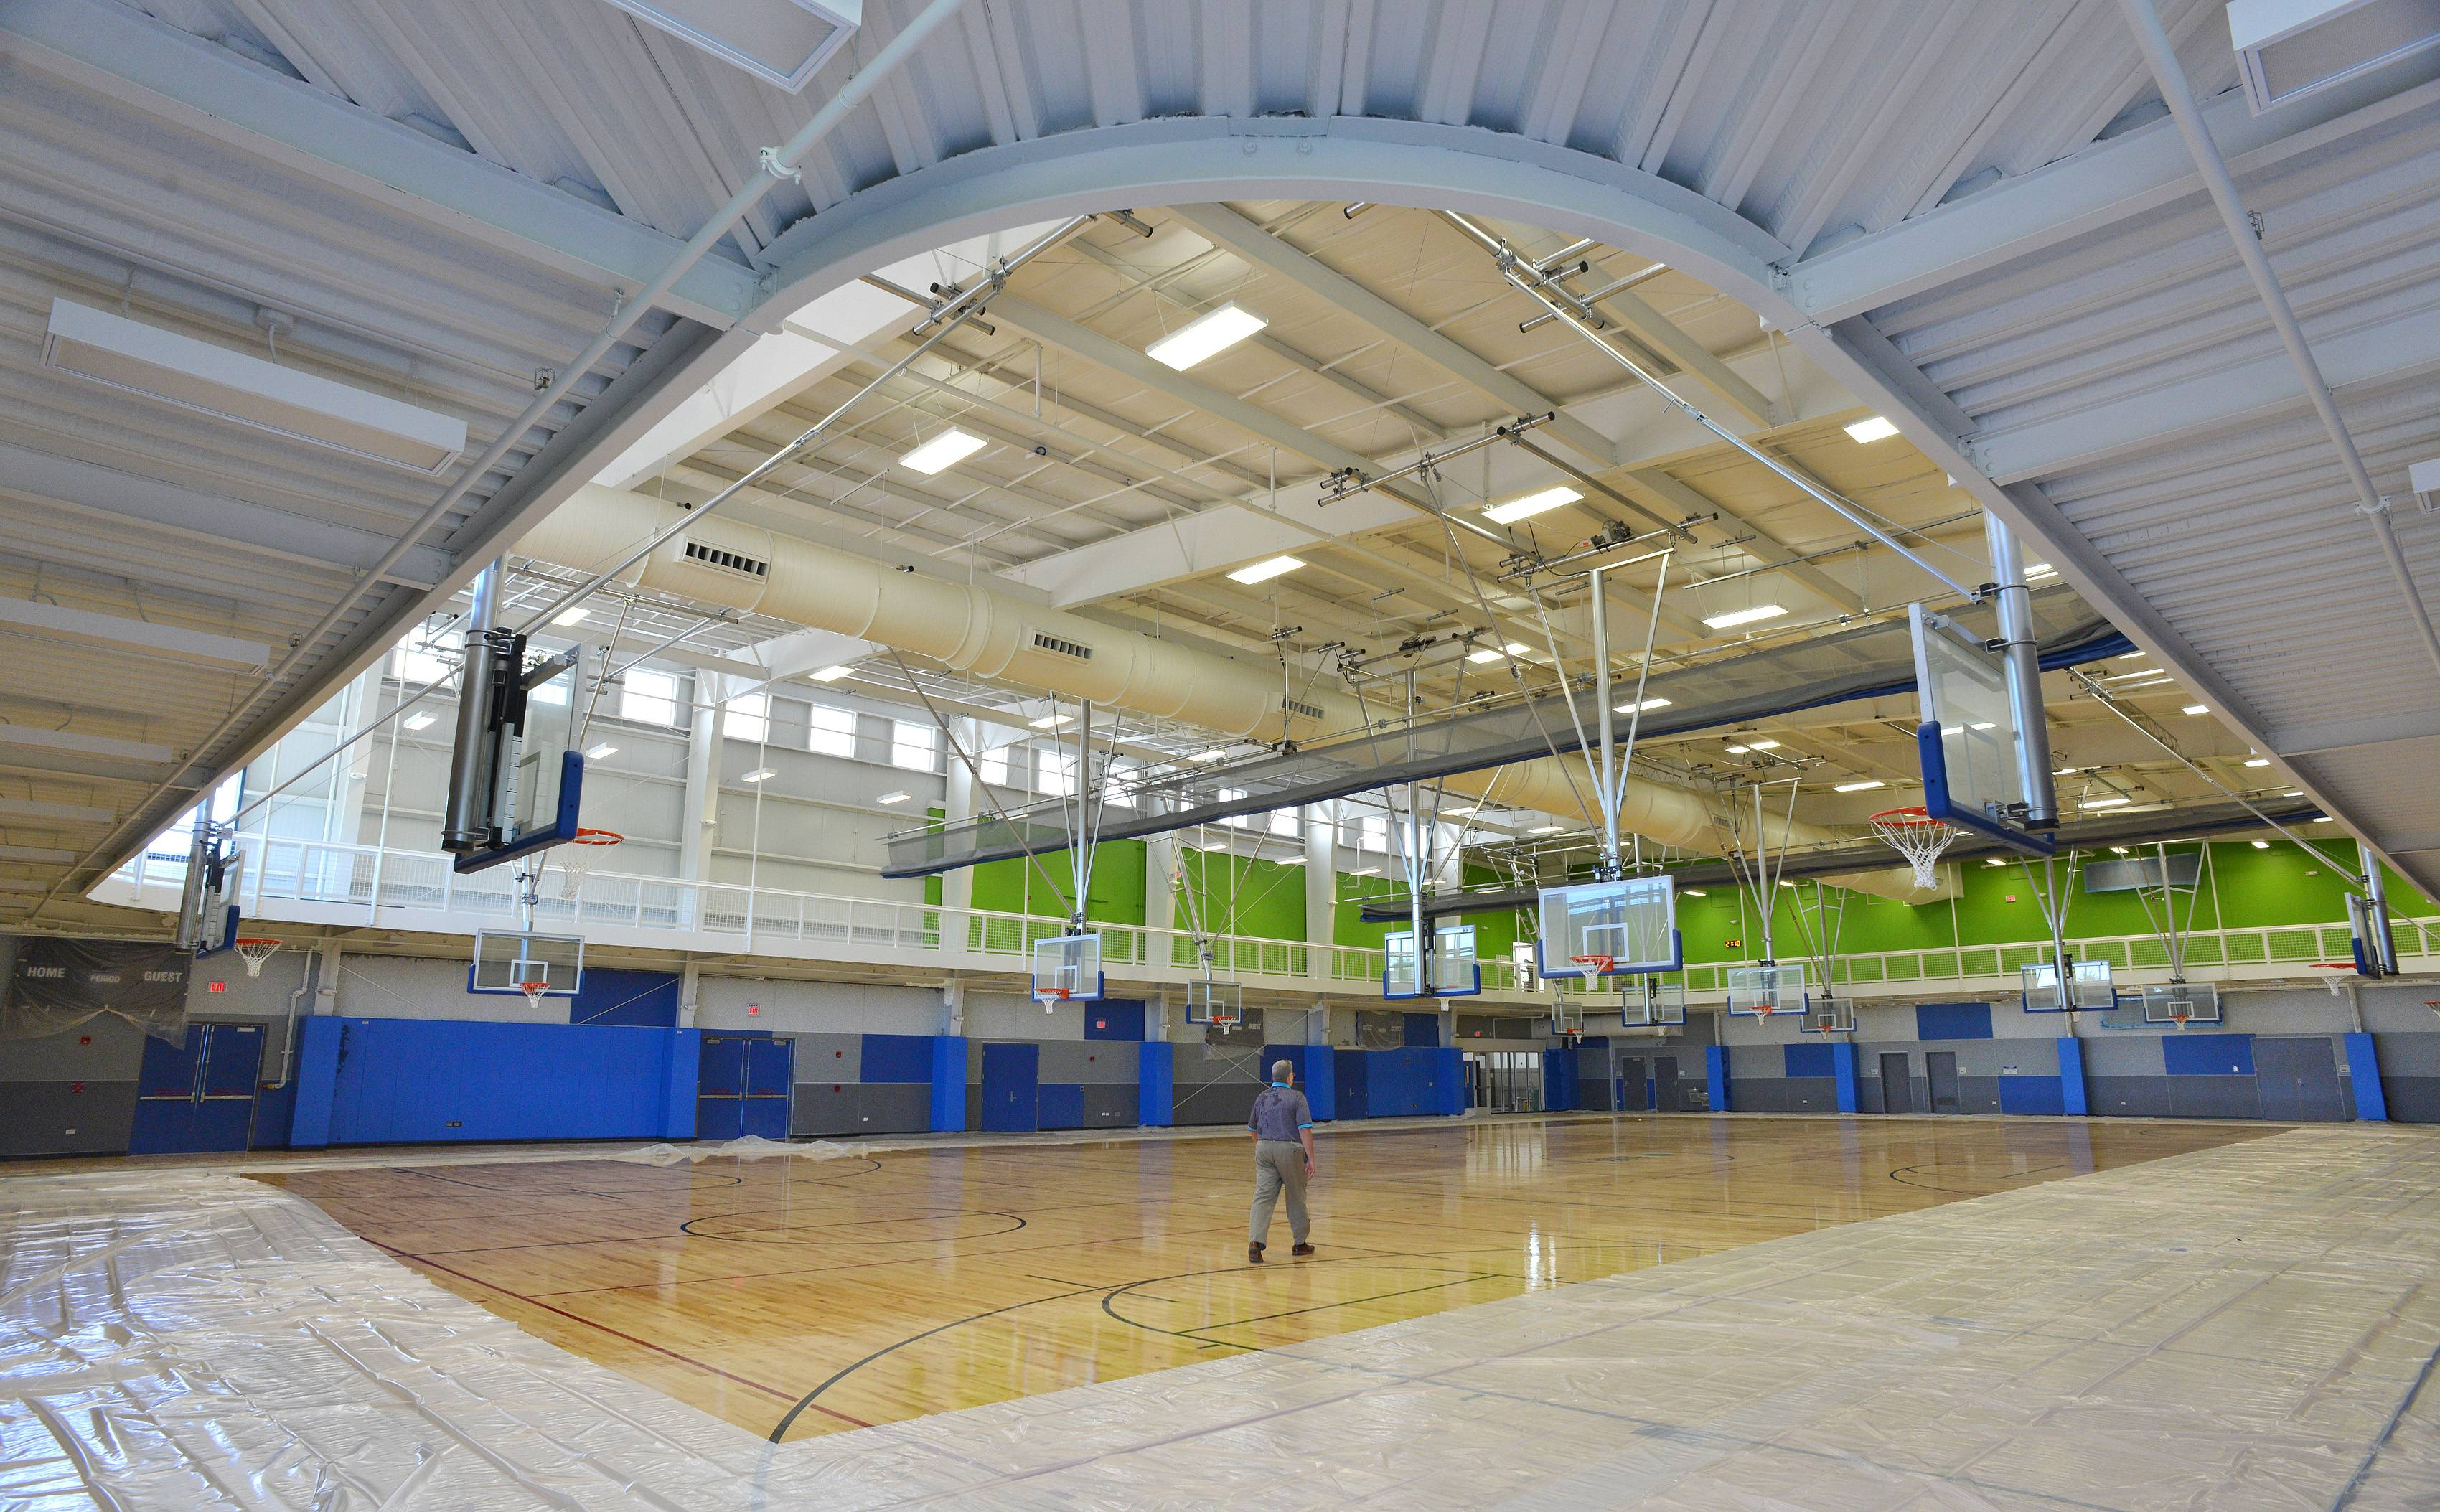 A three-court main gym surrounded by a running track will greet visitors to West Chicago Park District's indoor recreation center. Run 11 laps and you'll have covered a mile.